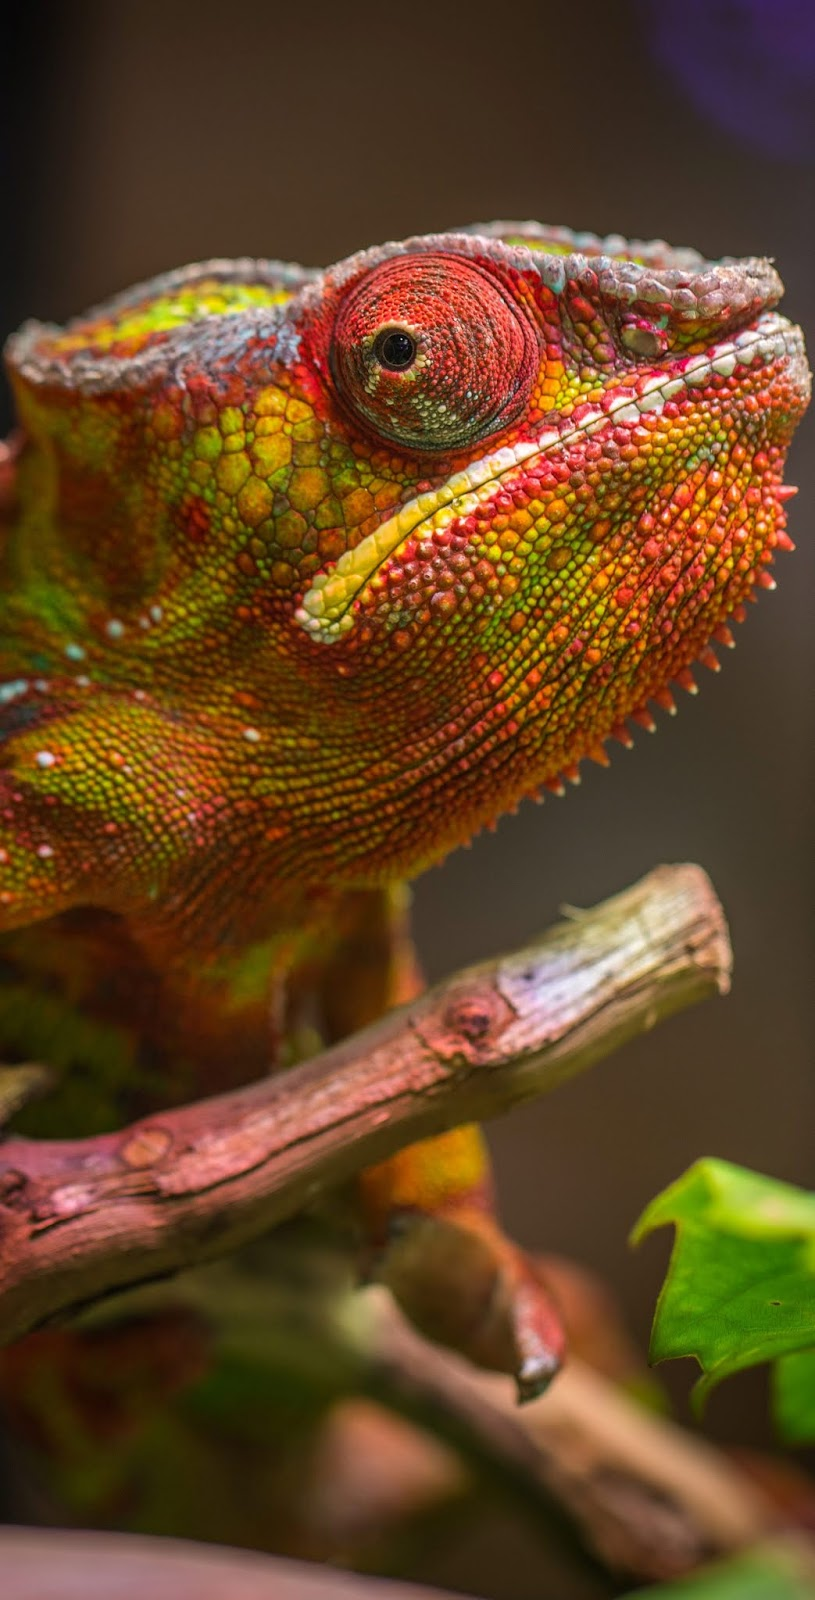 A colorful chameleon head shot.